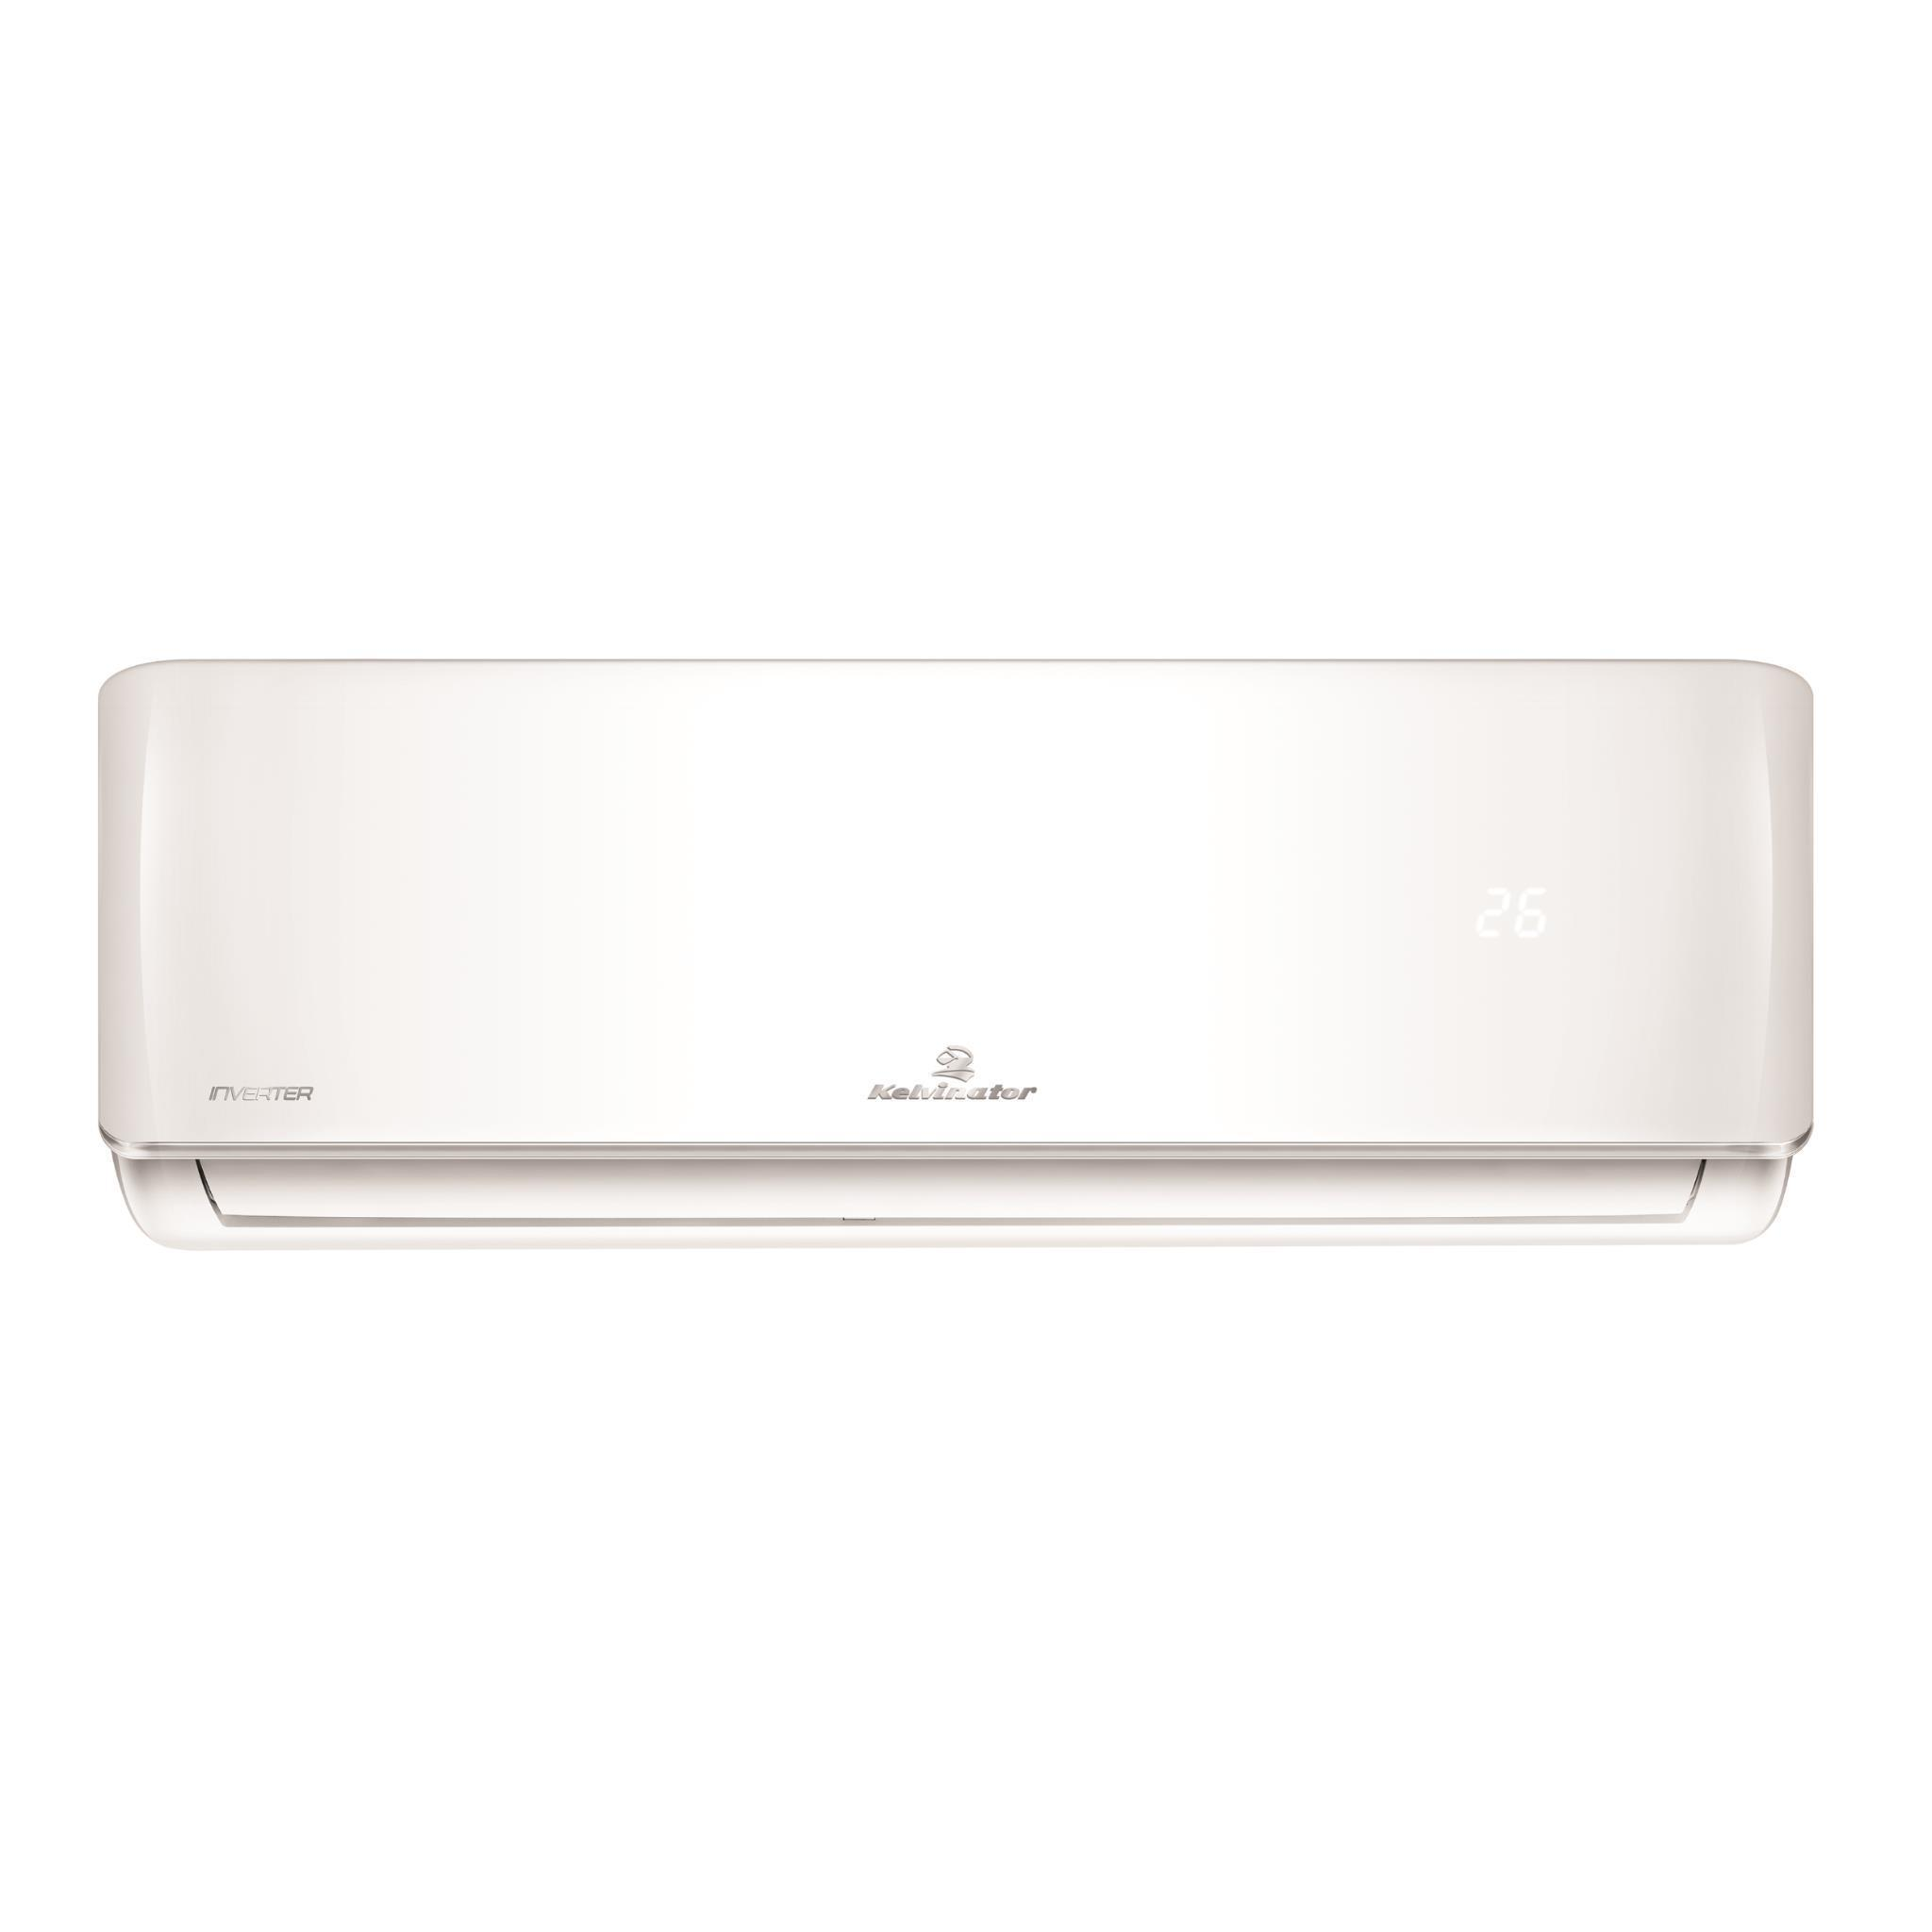 Kelvinator 5.0kW Split System Reverse Cycle Air Conditioner with Wireless Connectivity